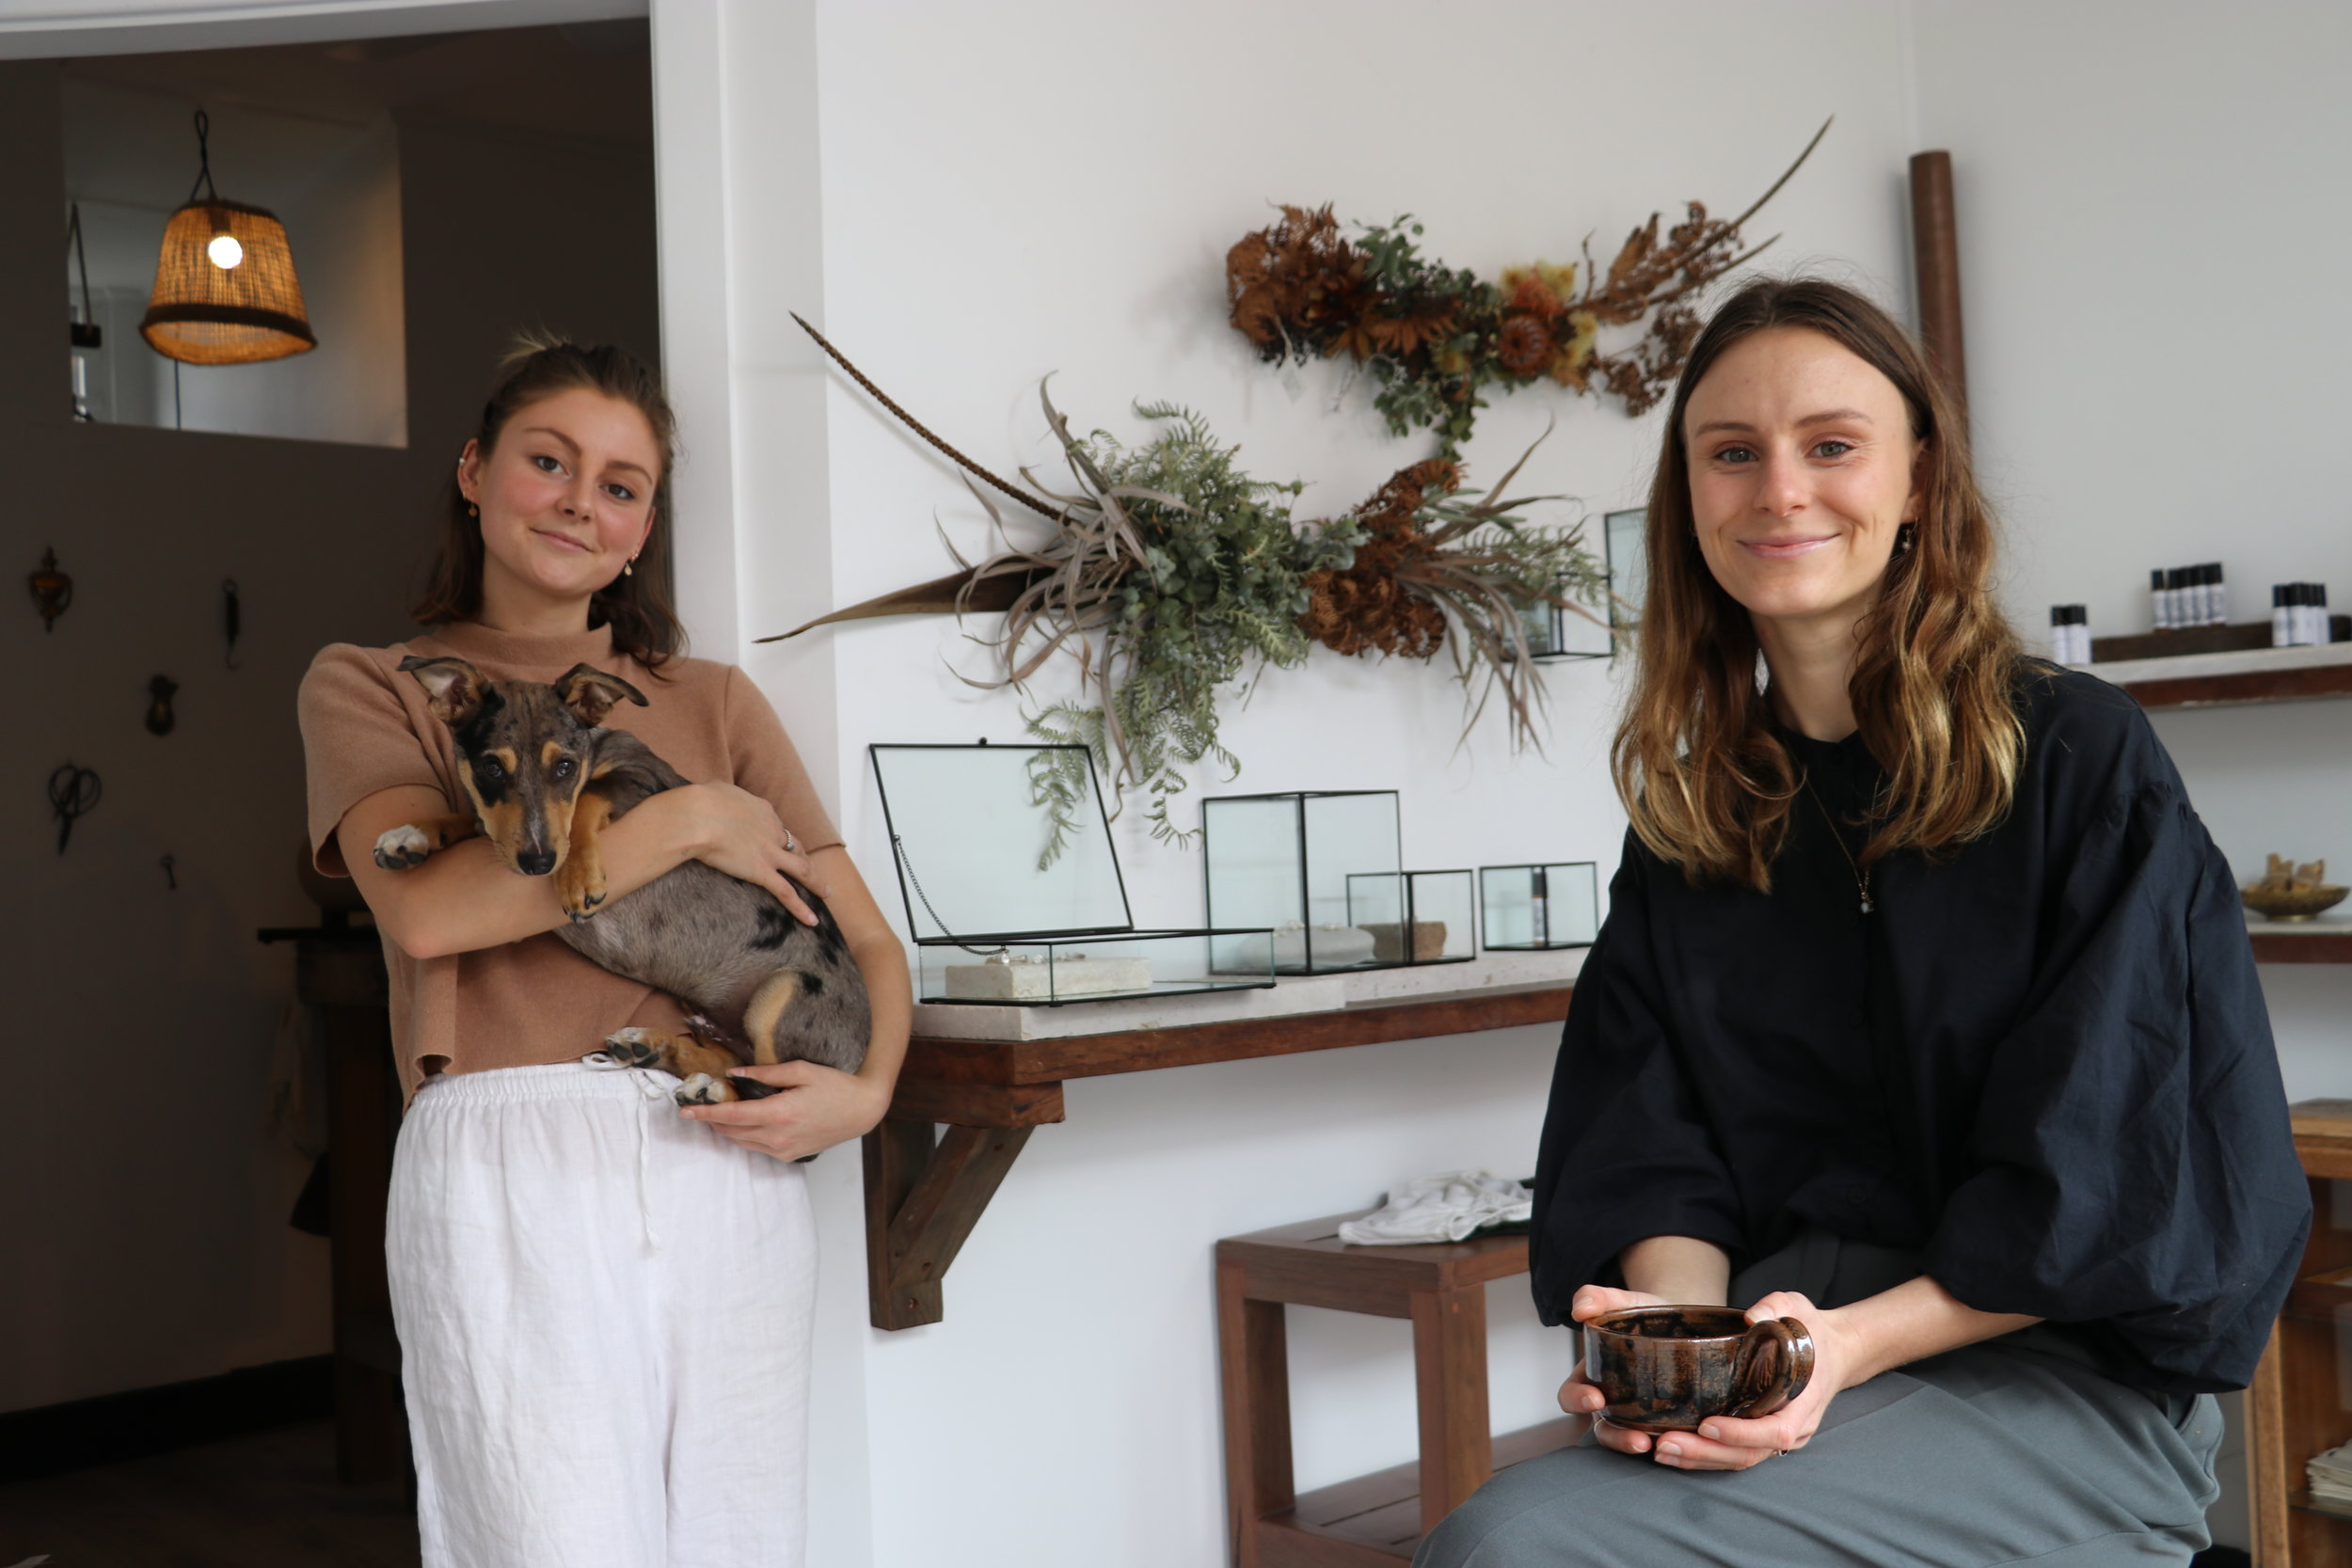 Morgan Kerr (left) with Leo the puppy and Gab Abell seated